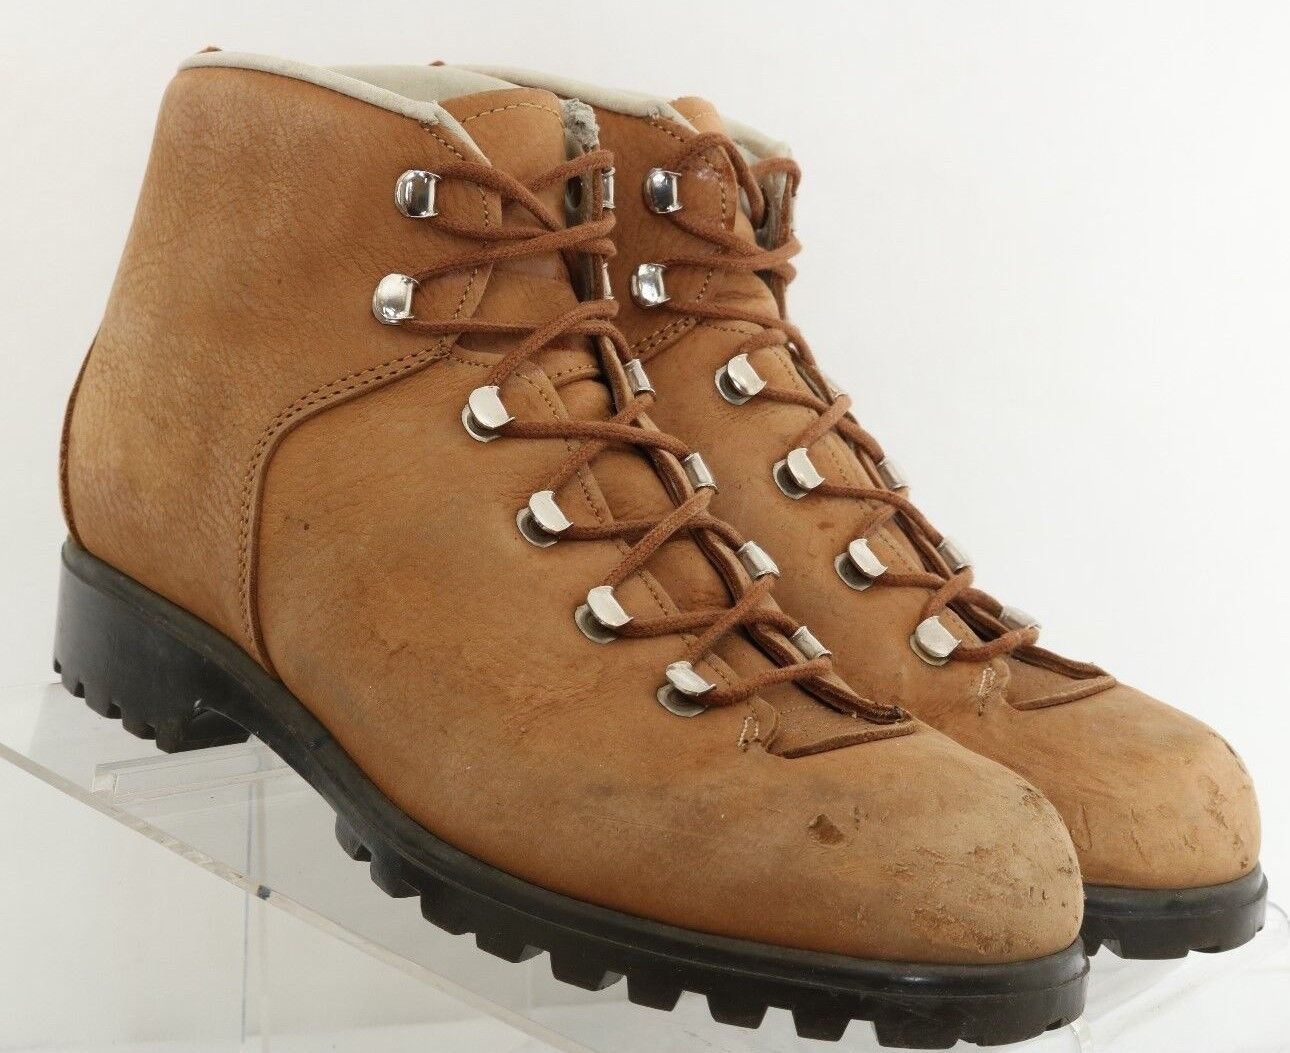 Raichle Vintage Brown Pebbled Mountaineering Ankle Boot 2266 Women's US 6